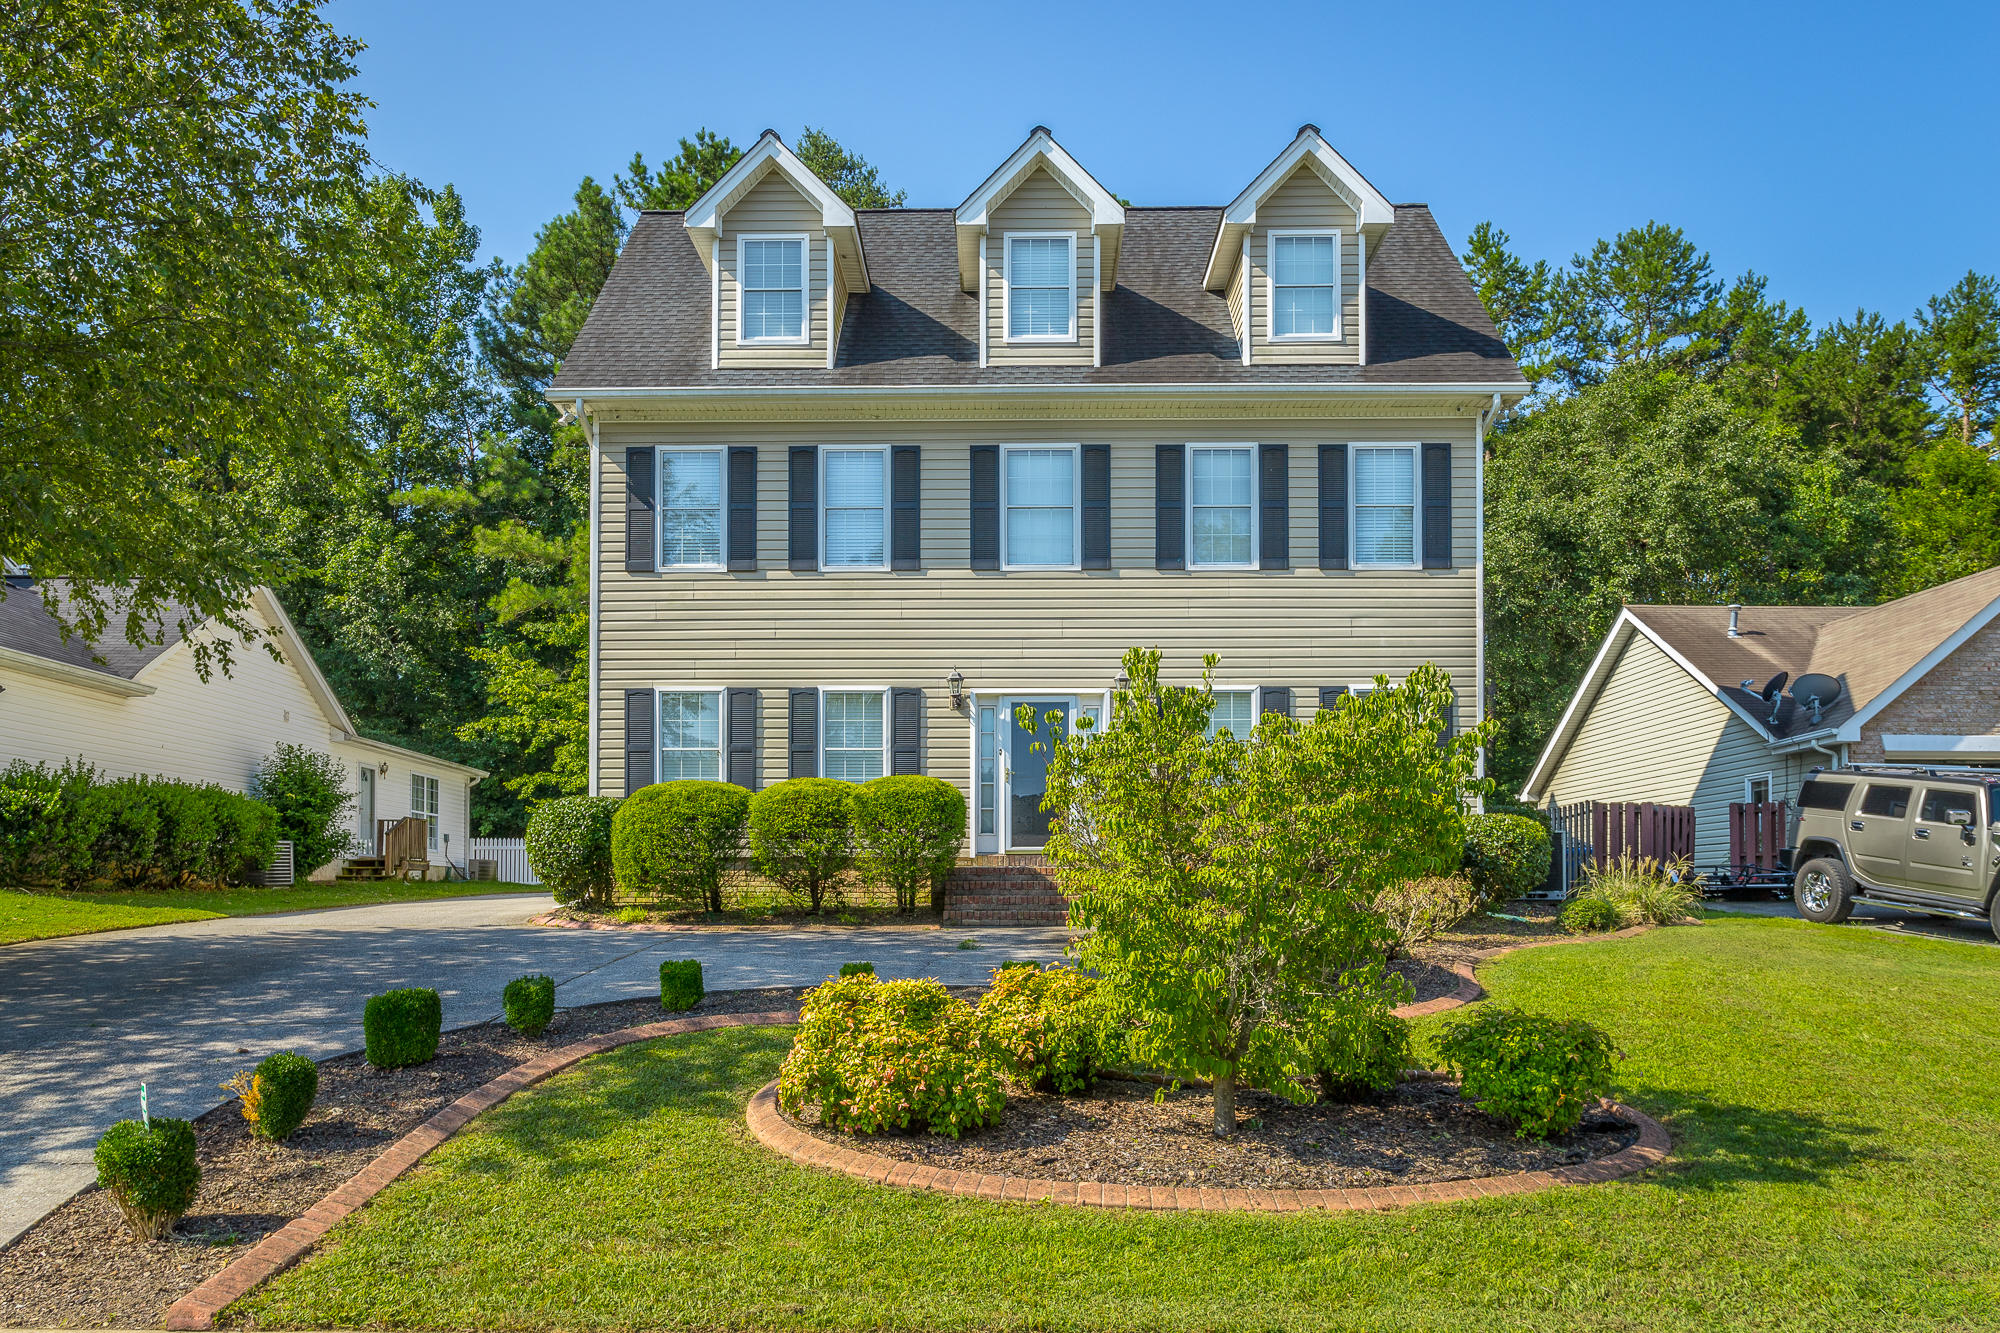 8106  Mee Mee  Rd 37421 - One of Chattanooga Homes for Sale